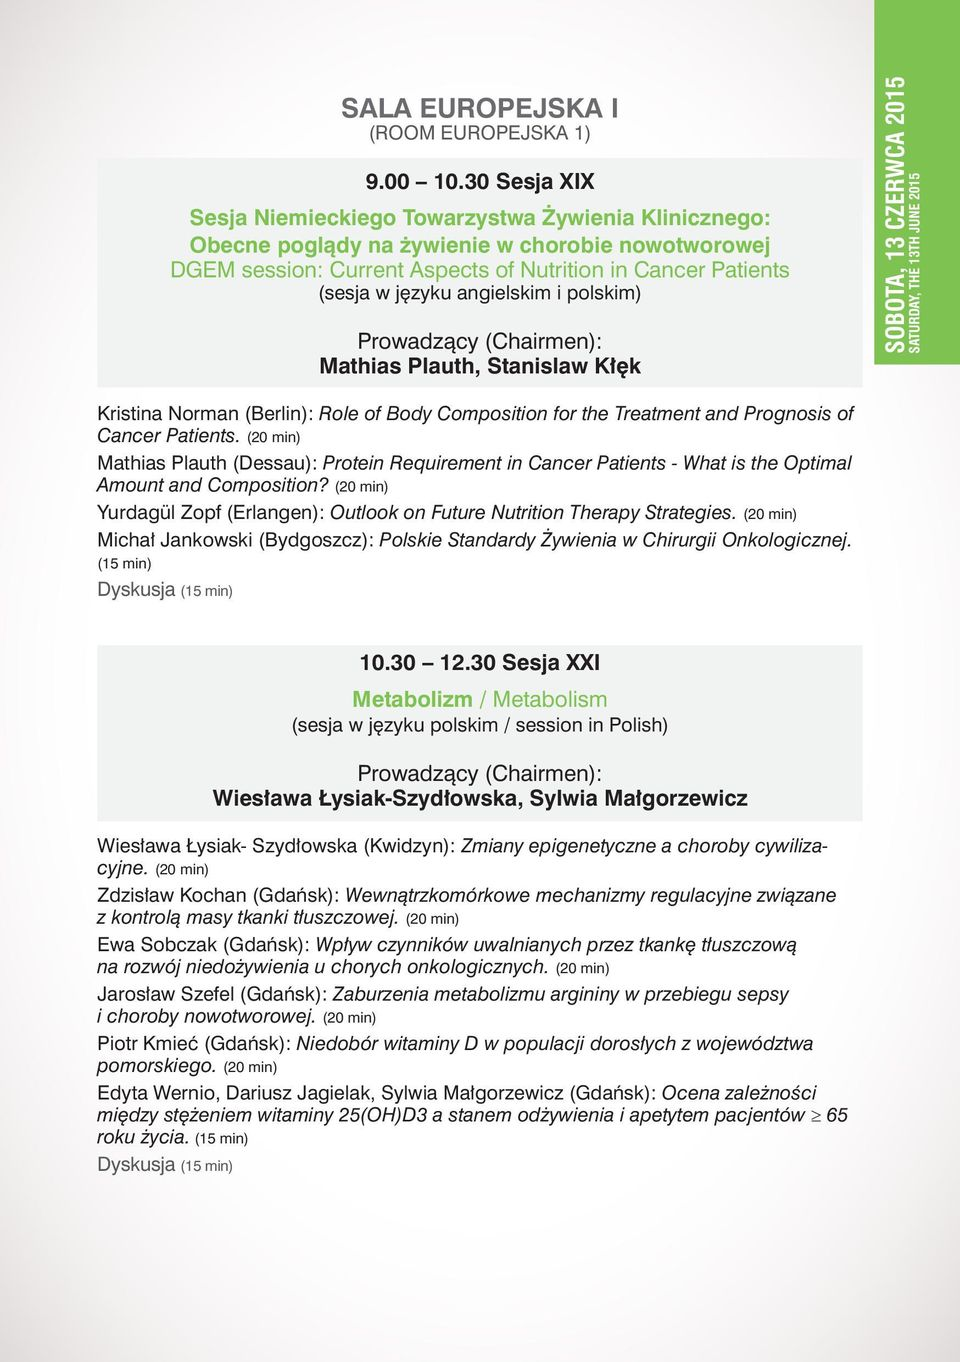 angielskim i polskim) Mathias Plauth, Stanislaw Kłęk SOBOTA, 13 CZERWCA 2015 SATURDAY, THE 13TH JUNE 2015 Kristina Norman (Berlin): Role of Body Composition for the Treatment and Prognosis of Cancer